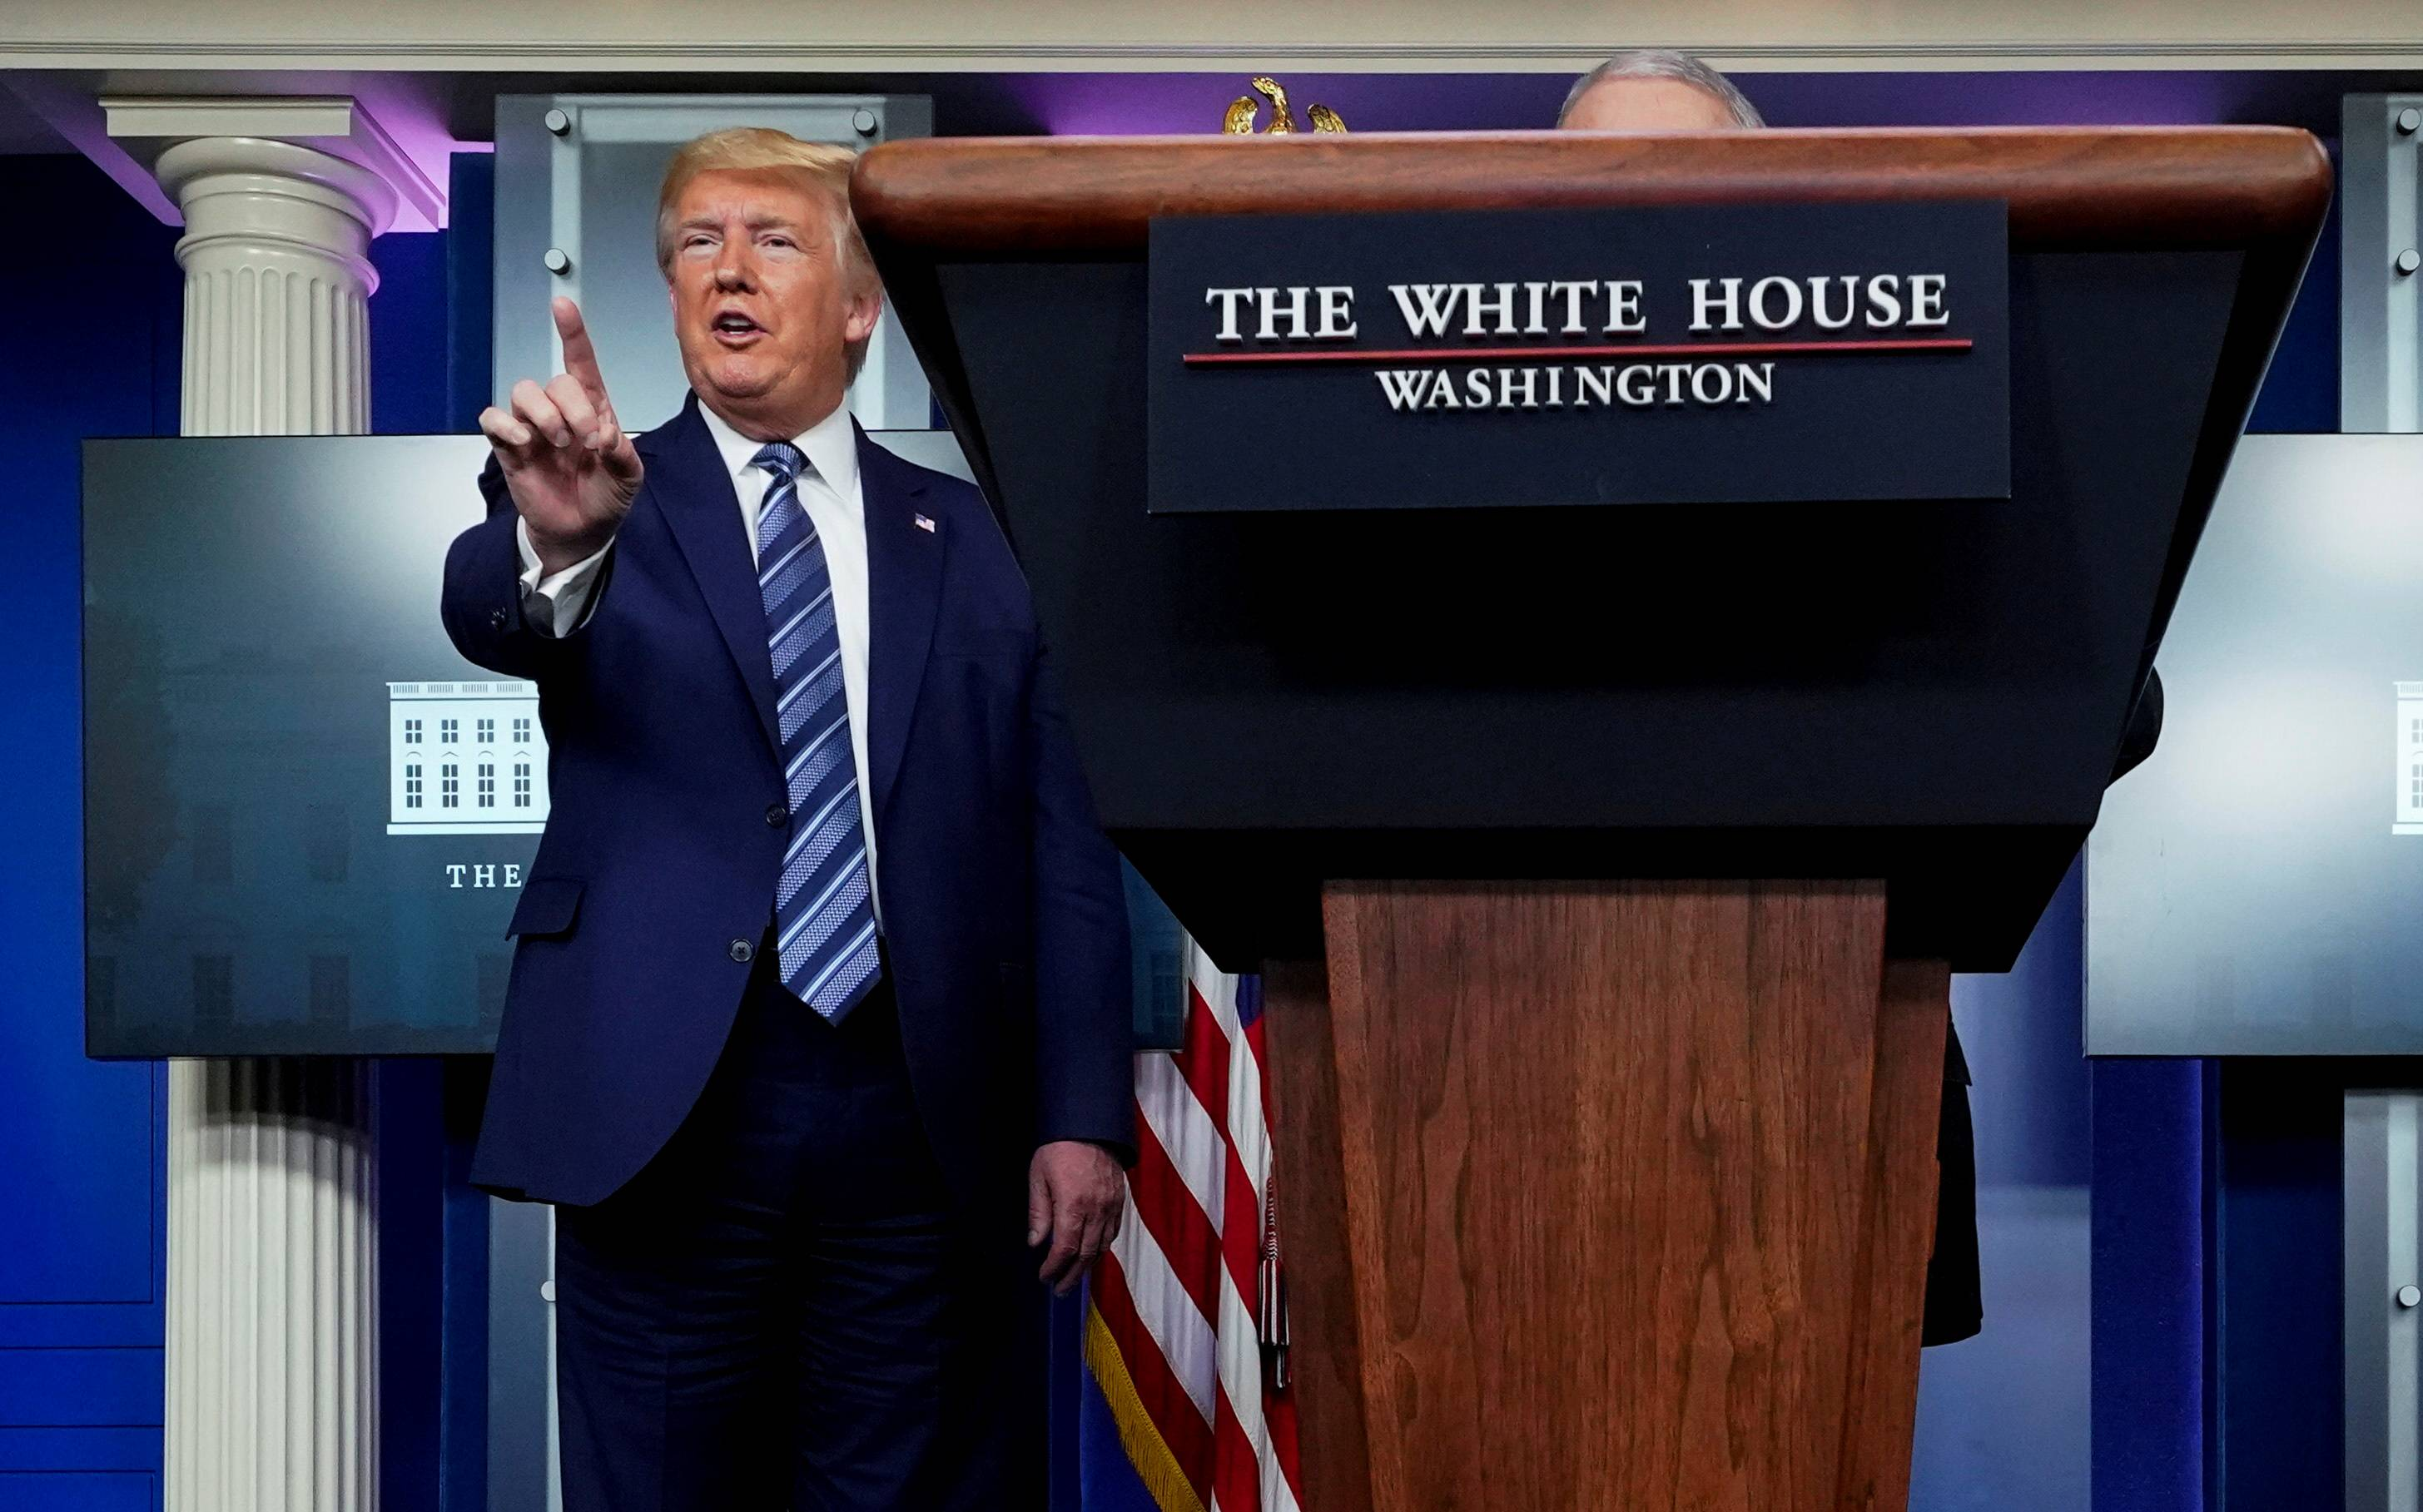 U.S. President Donald Trump stops a reporter from asking Dr. Anthony Fauci a question about use of the drug hydroxychloroquine to treat COVID-19, at the White House on April 5. | REUTERS